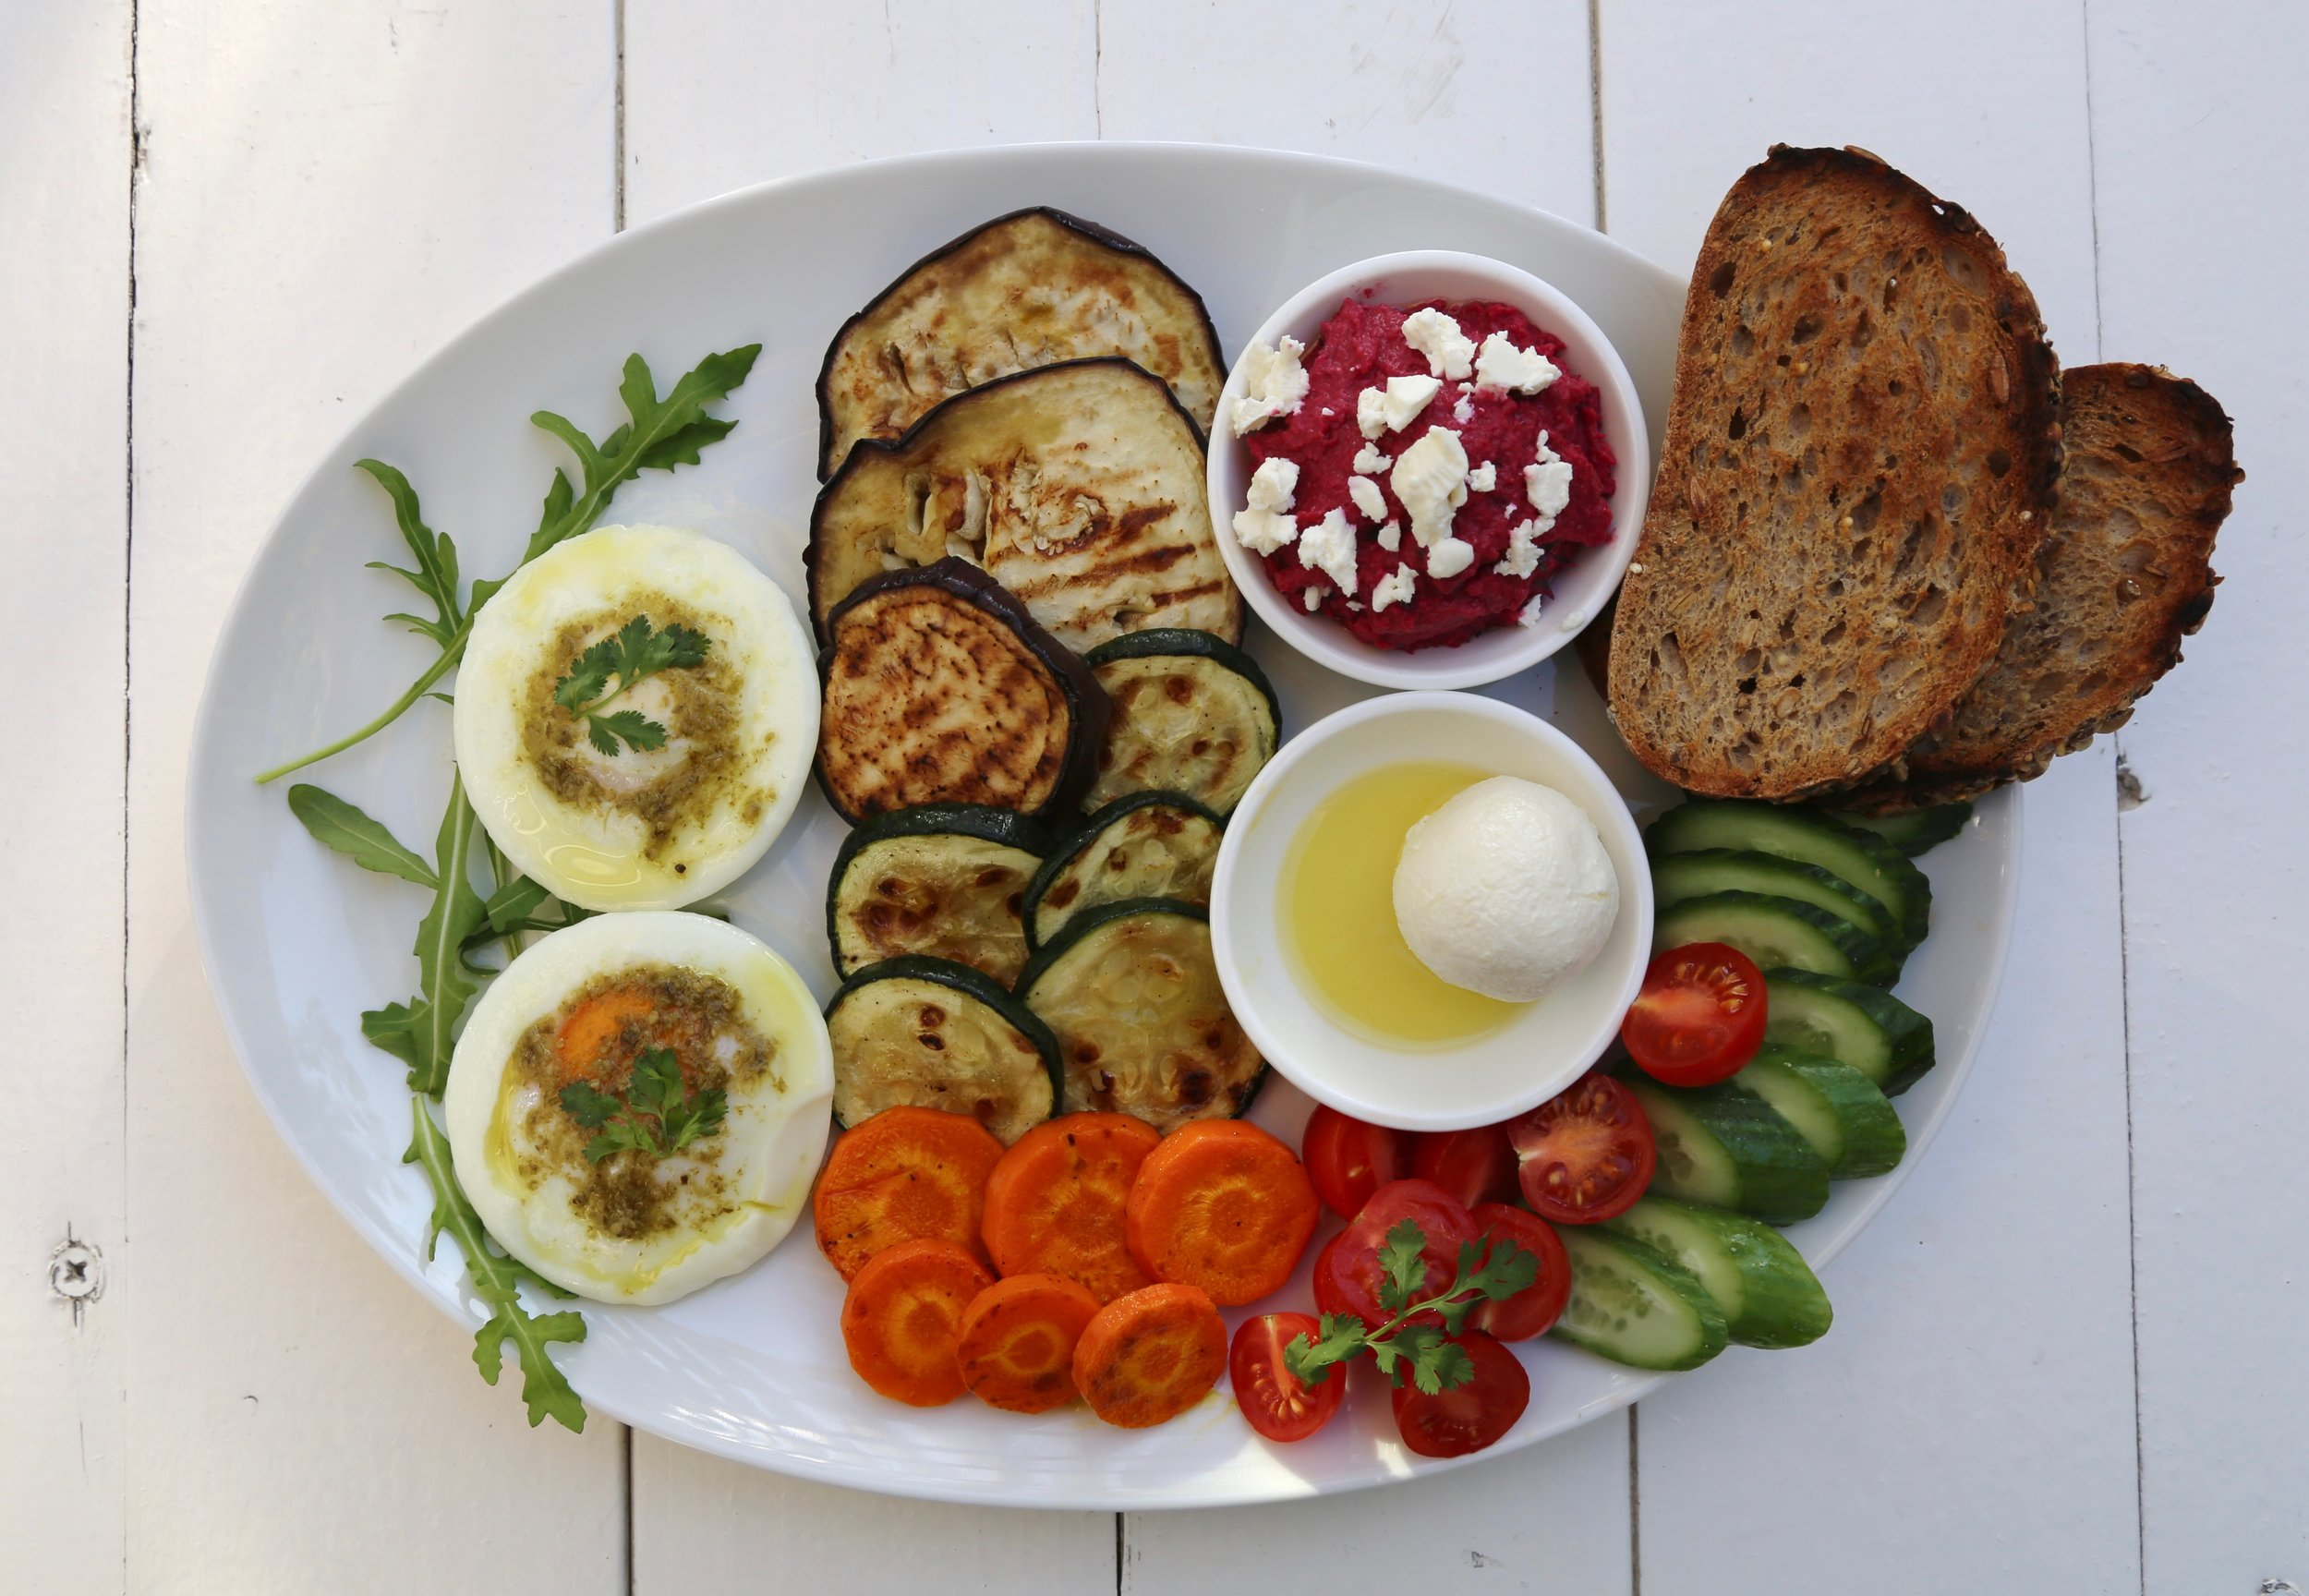 Breakfast Combo Meal: Served with labaneh, carrot, cucumber, hummus, grilled veggies and toast bread